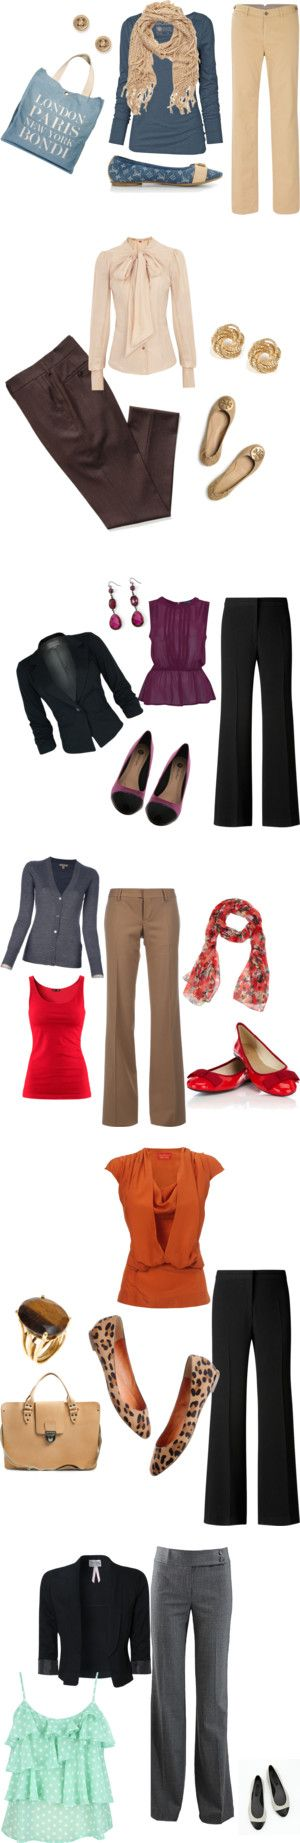 I like all of these! Practical, can wear mix and match for everyday wear & for work